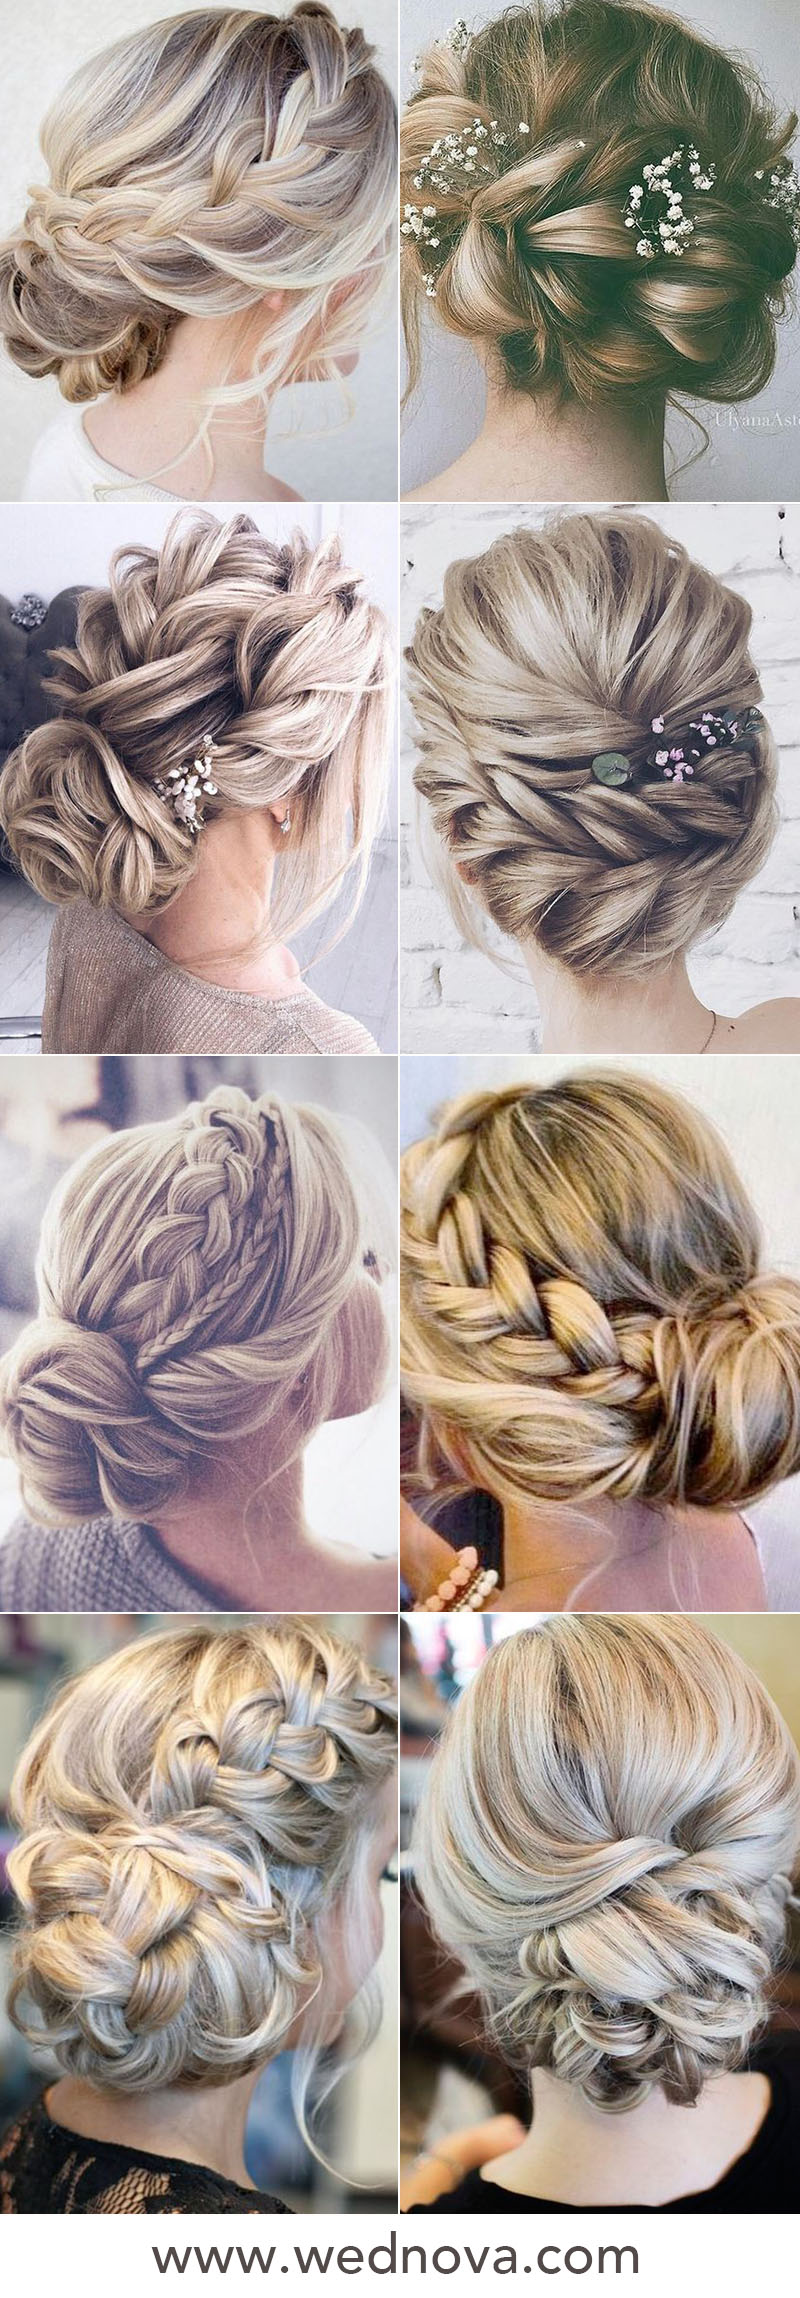 48 Easy Wedding Hairstyles Best Guide for Your Bridesmaids in 2019 -  WedNova Blog